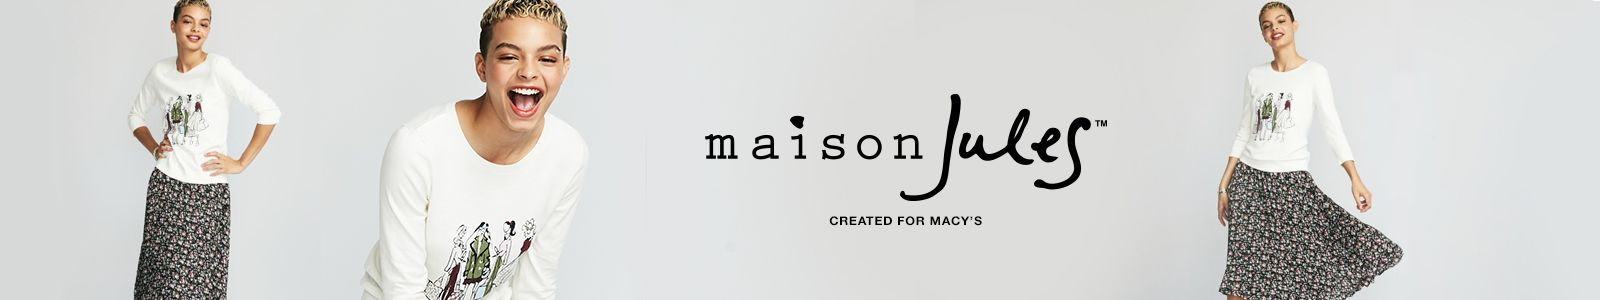 Maison jules, Created for Macy's